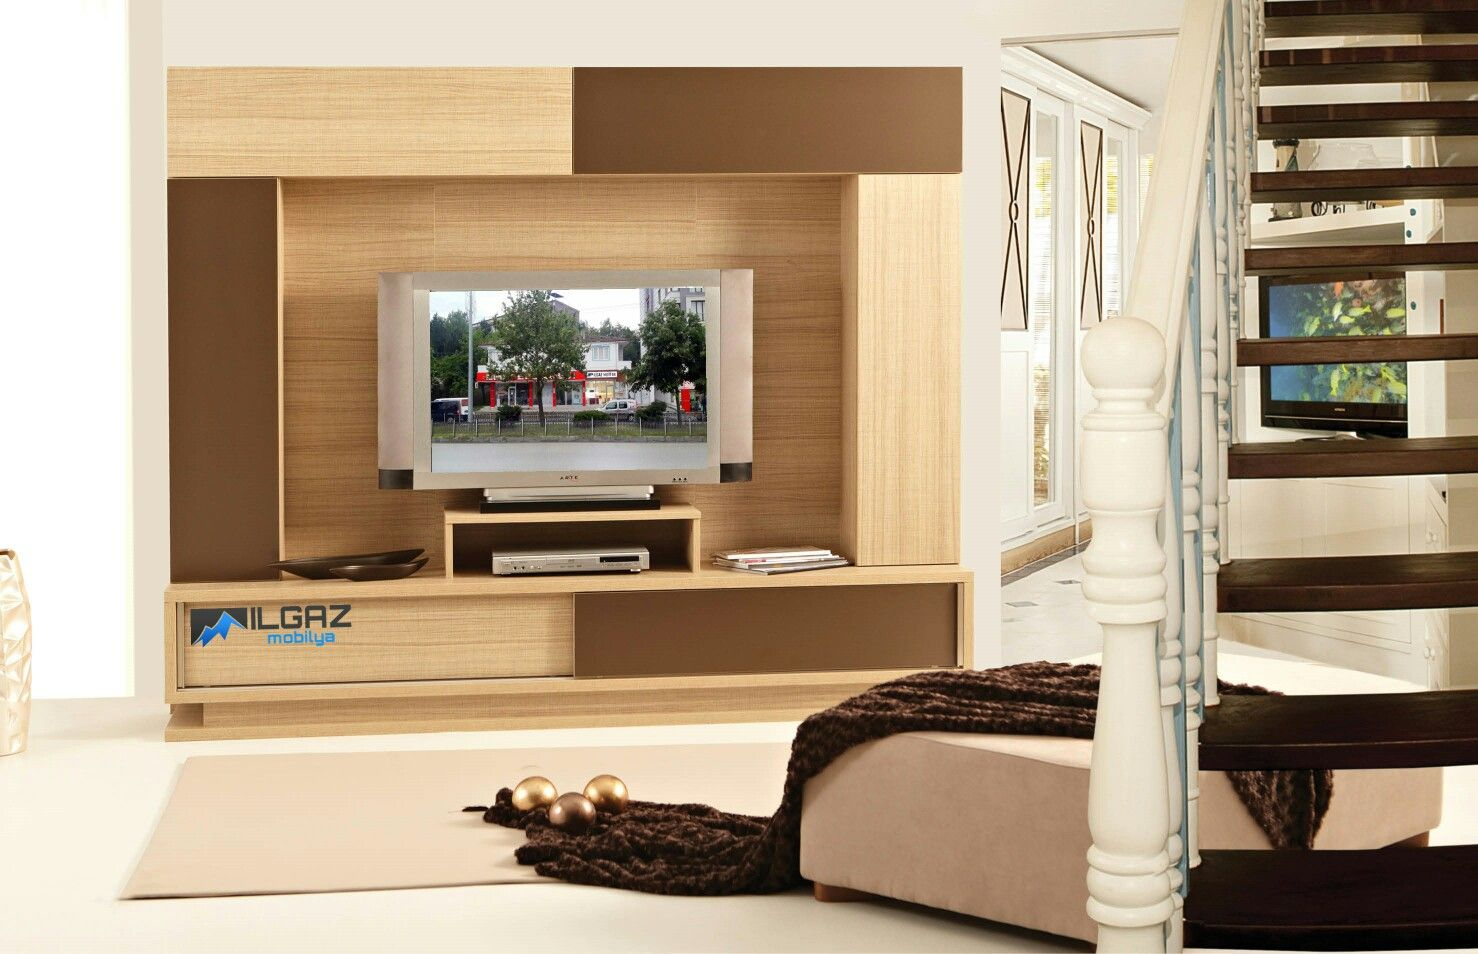 Wall Unit Cabinet Furniture Living Room Ideas Ilgazmutfak Gmail  # Giellesse Muebles